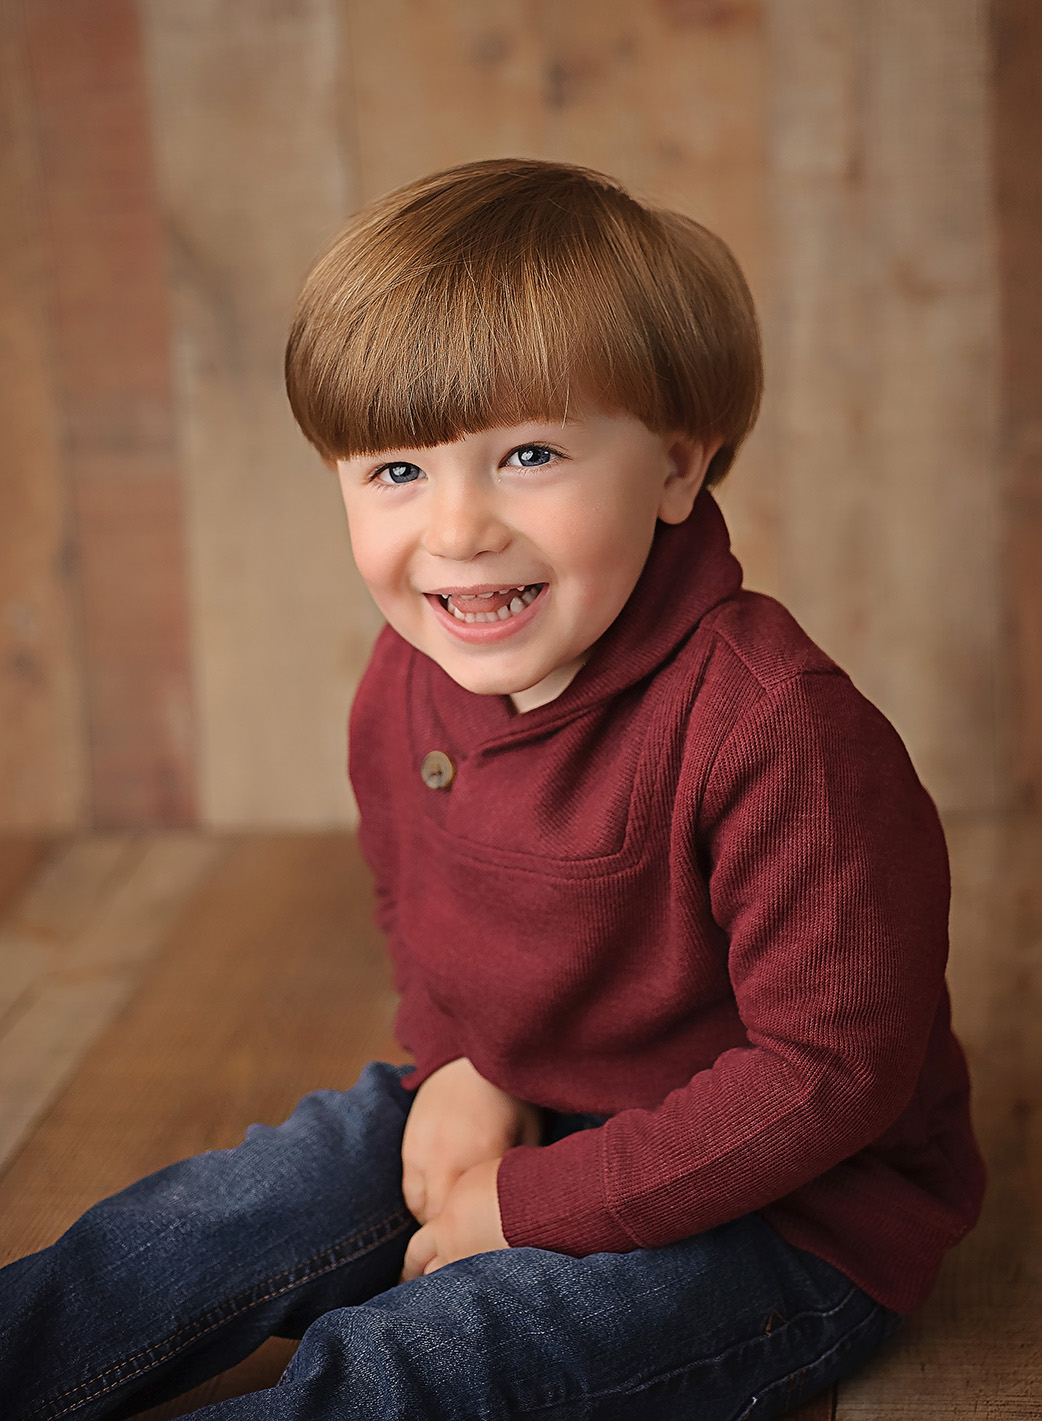 3 year old boy in red sweater